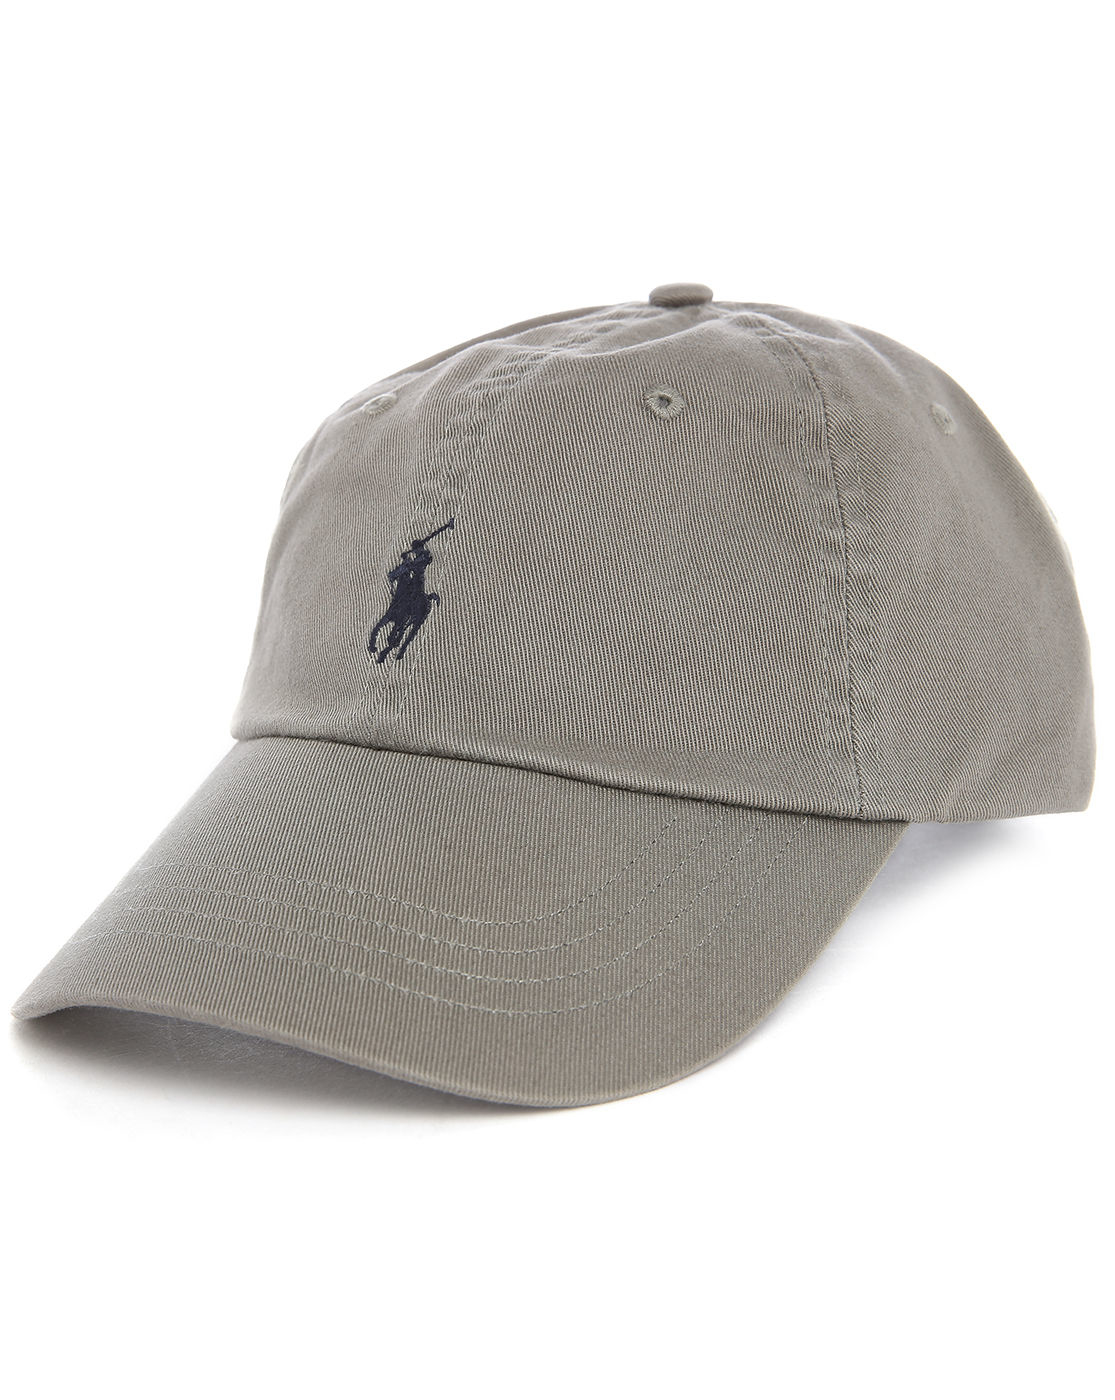 polo ralph lauren grey classic logo cap in gray for men lyst. Black Bedroom Furniture Sets. Home Design Ideas